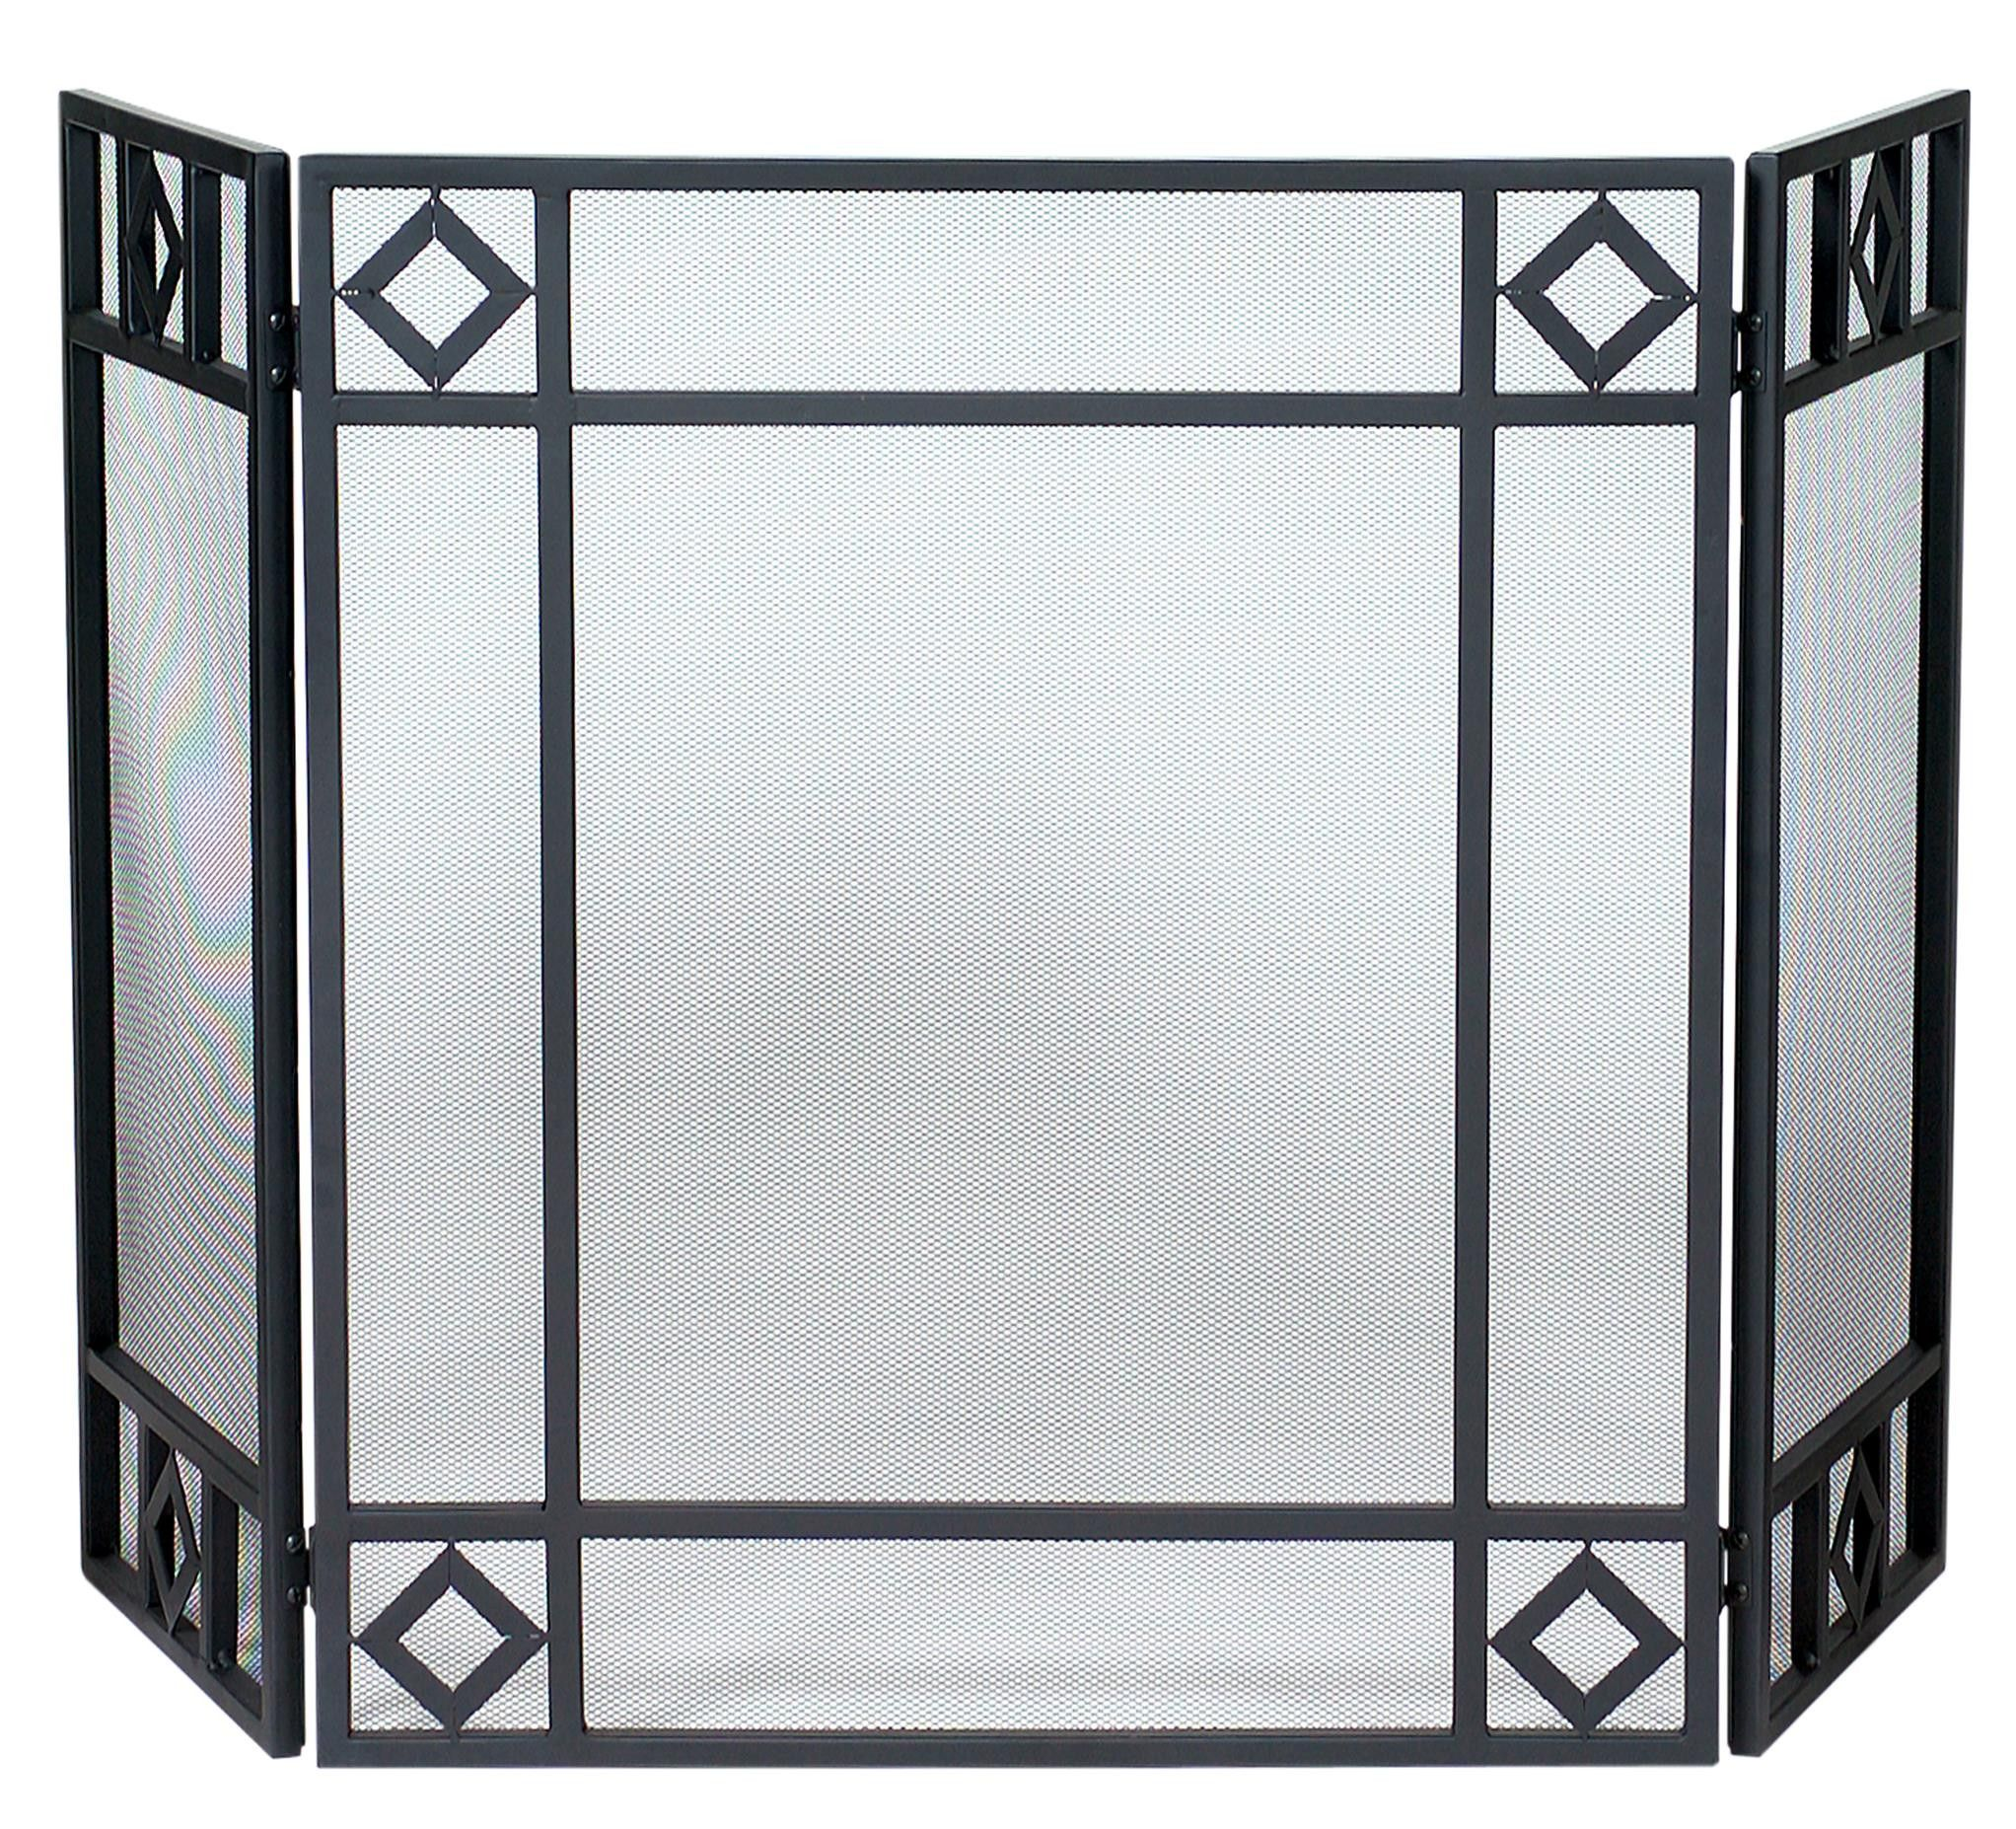 3 fold wrought iron screen with its popular black wrought iron